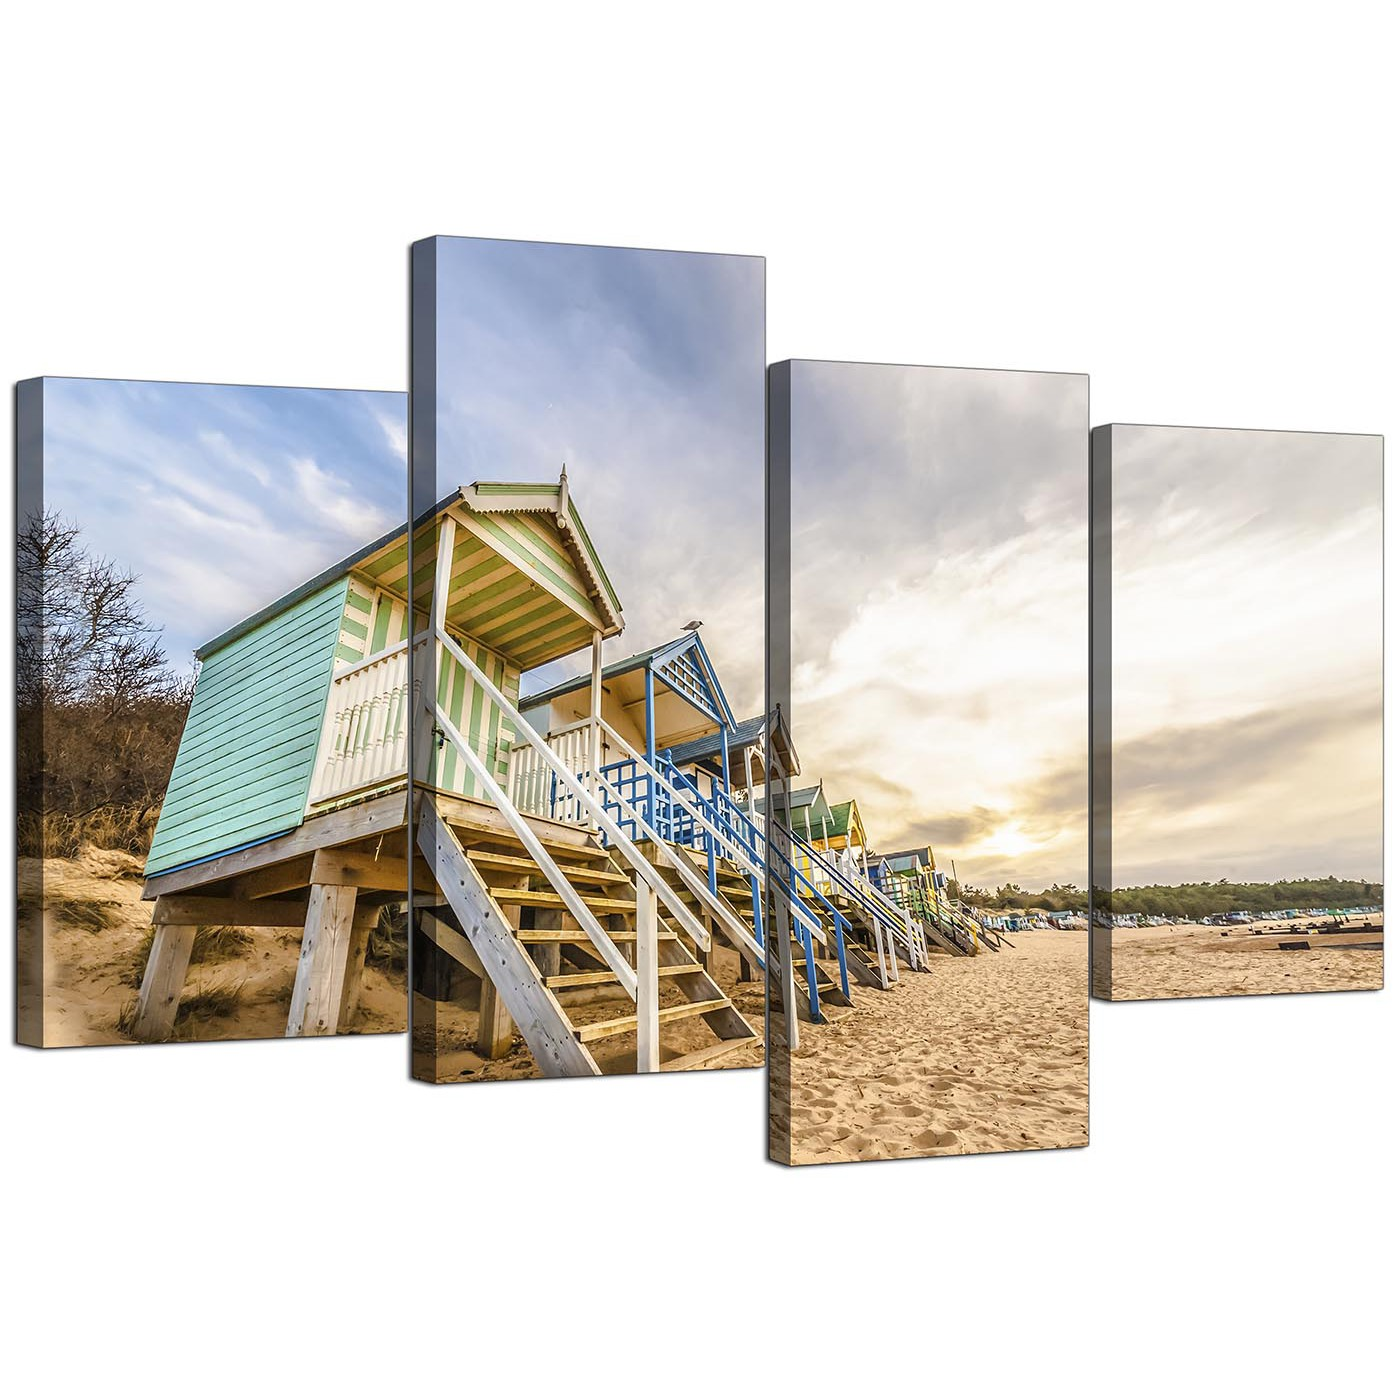 Wall Art Sets For Living Room Canvas Wall Art Of Beach Huts For Your Living Room Set Of 4